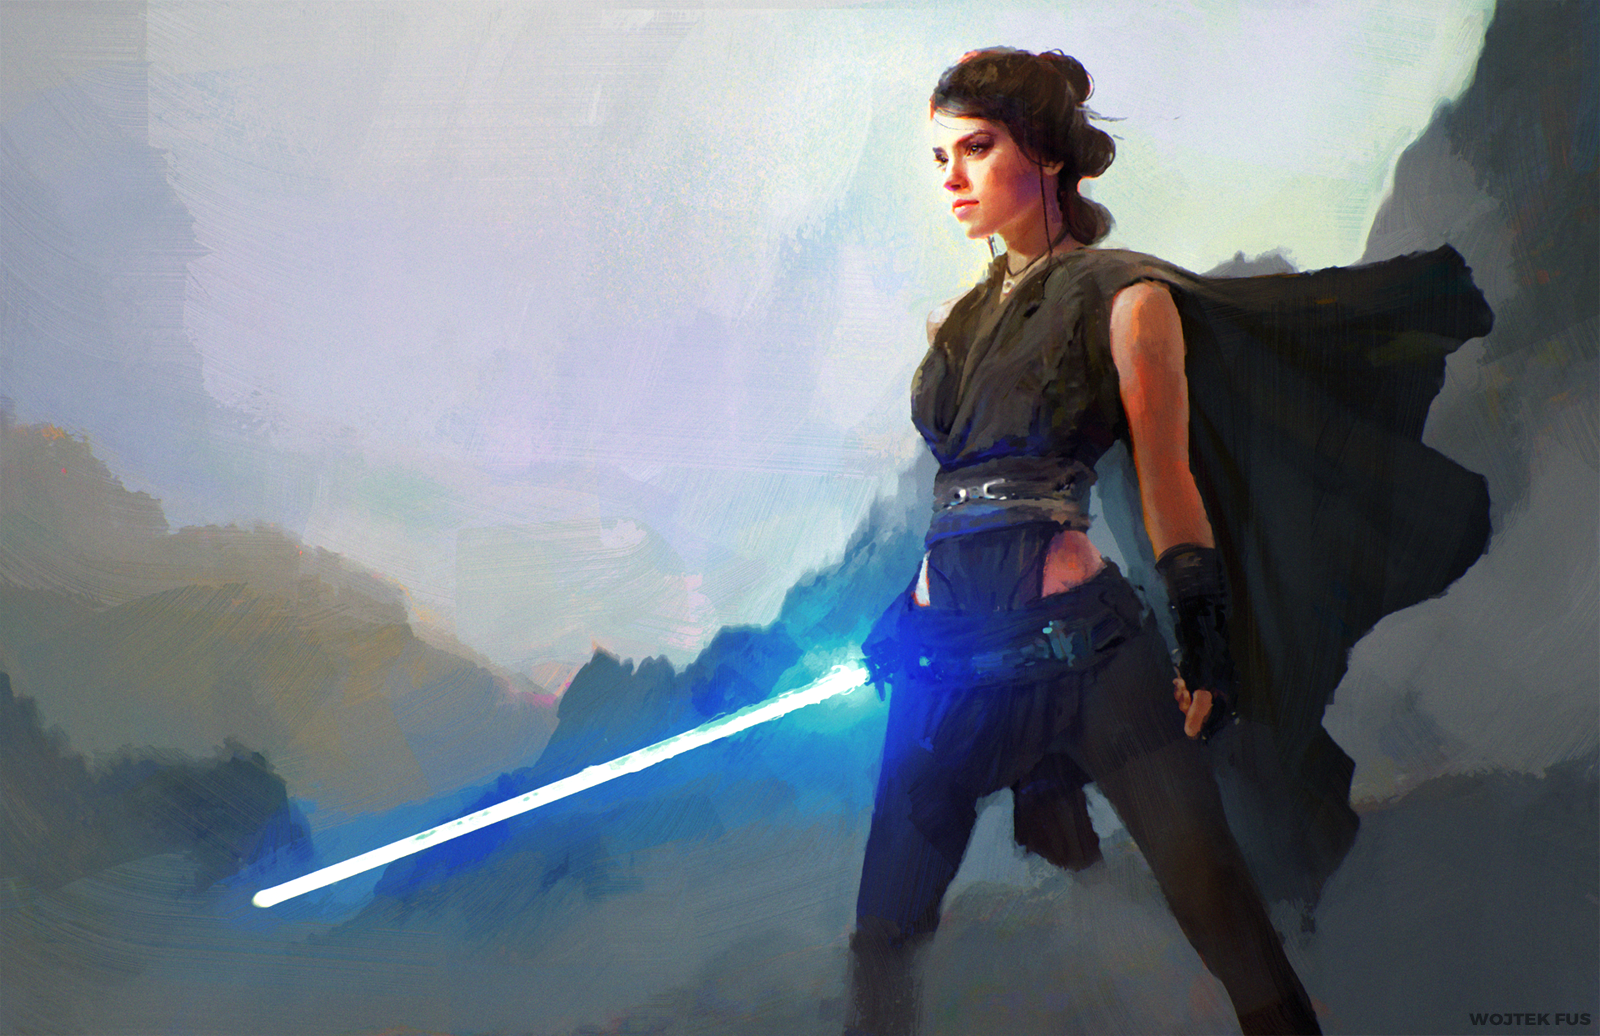 Rey Wallpaper and Background Image | 1600x1036 | ID:698768 - Wallpaper Abyss